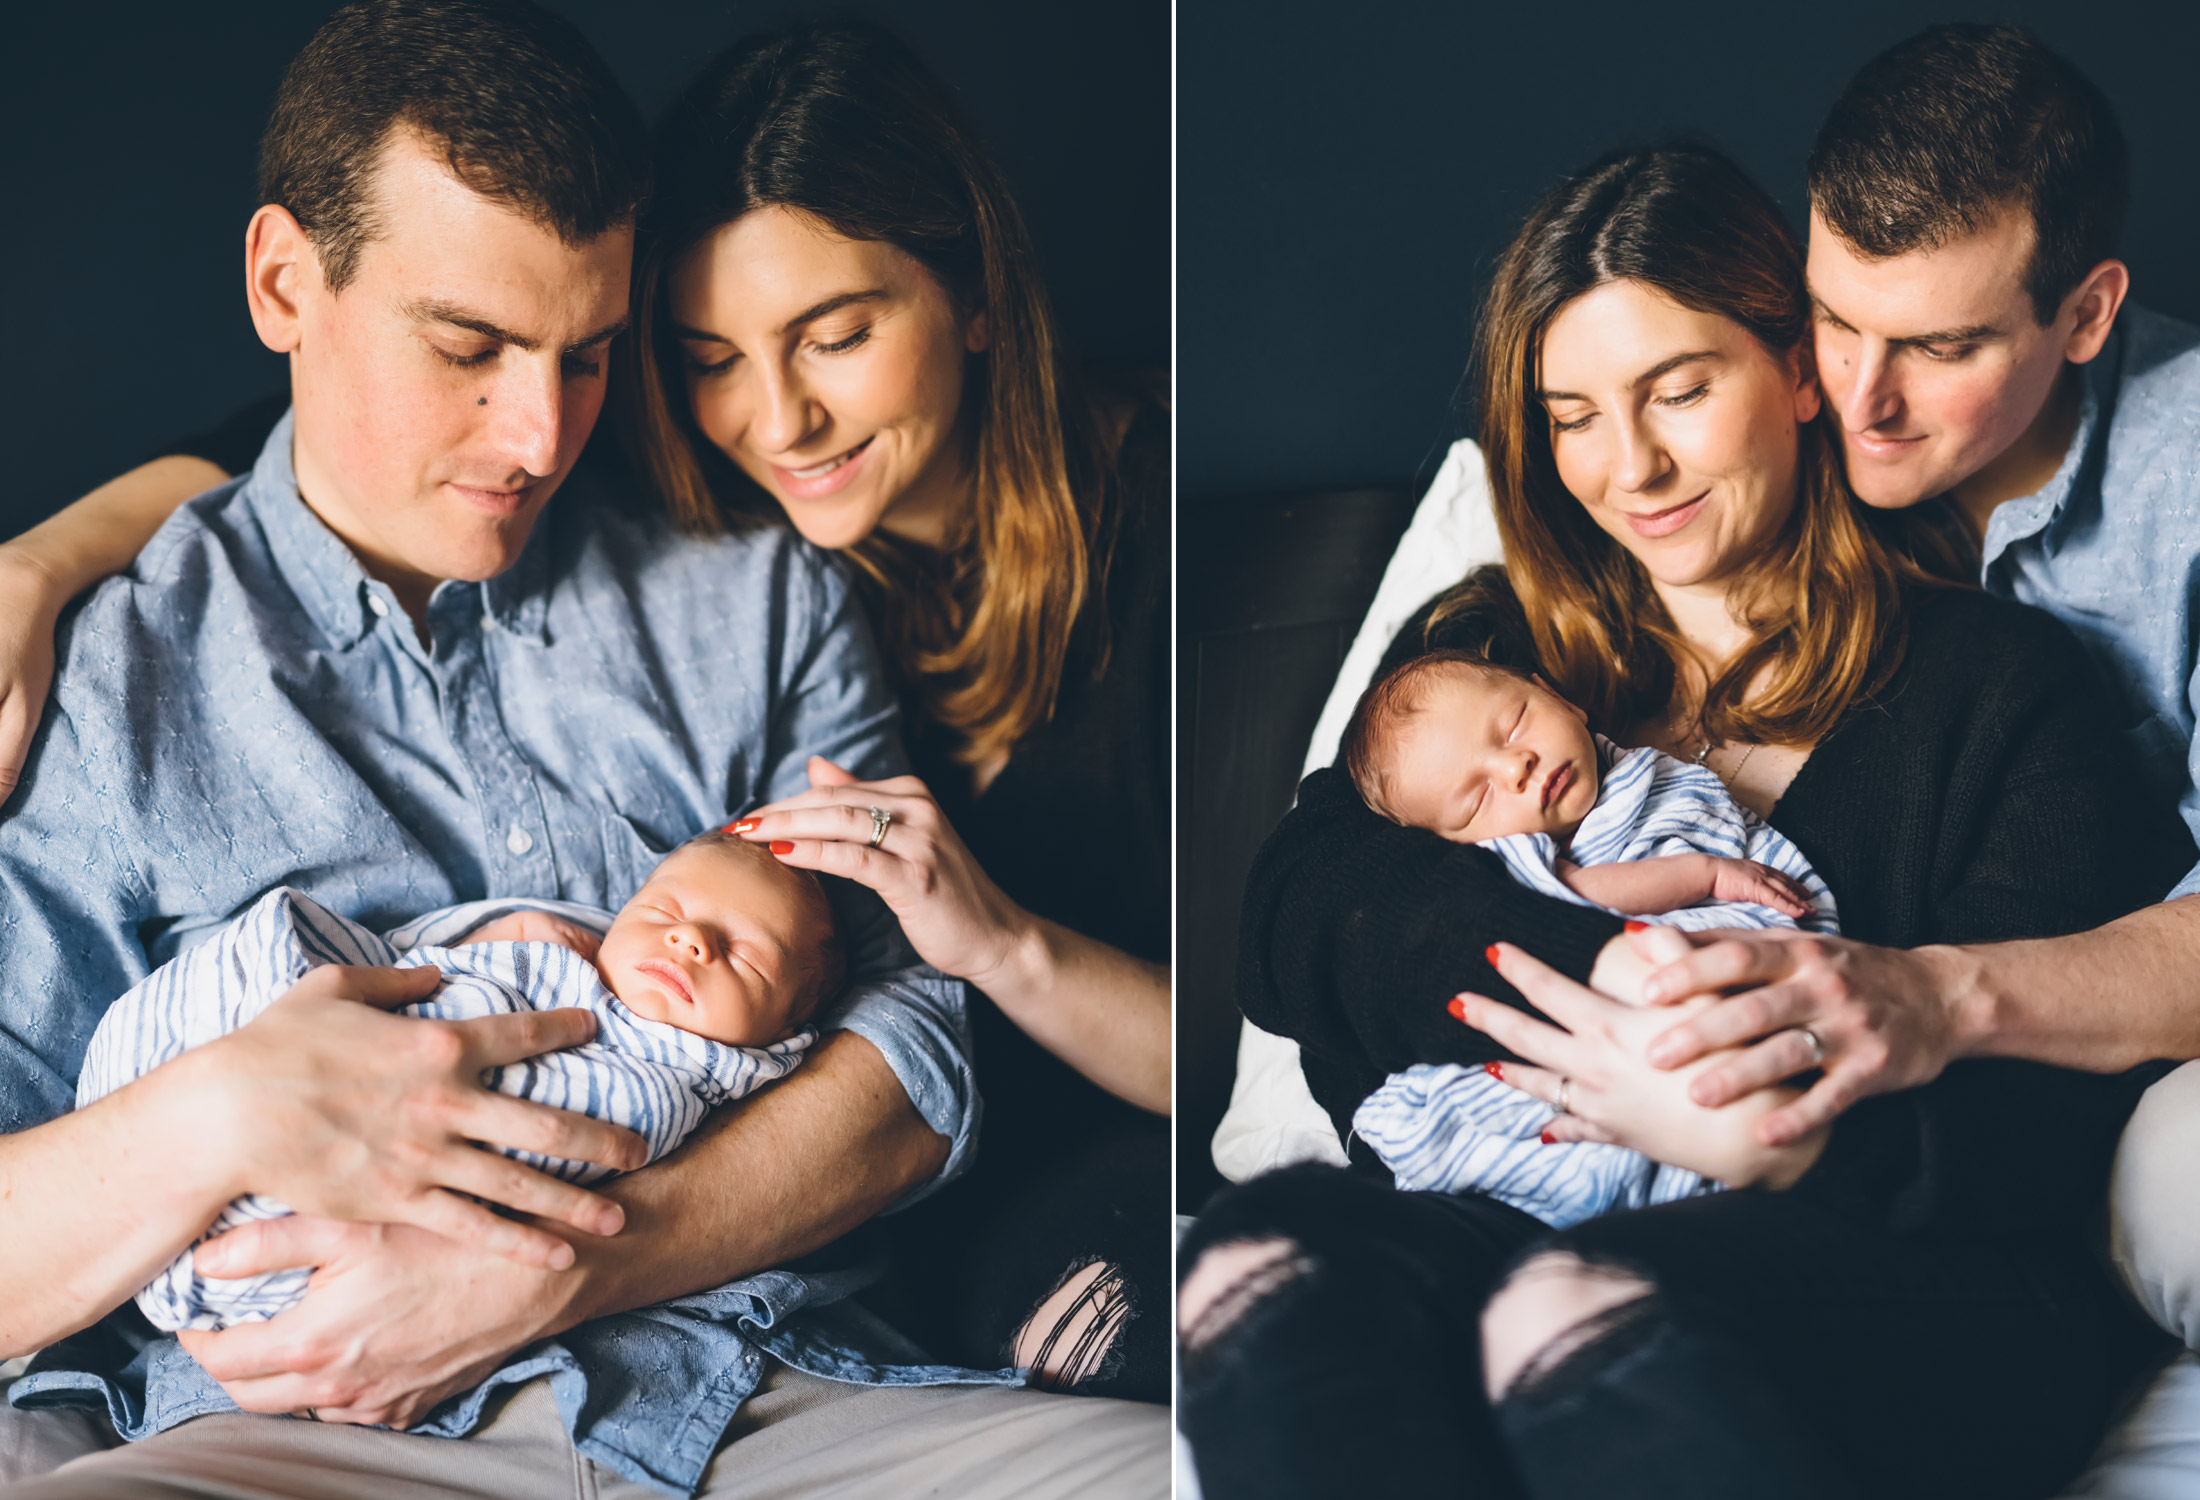 happy-san-francisco-couple-with-their-newborn-baby-boy.jpg